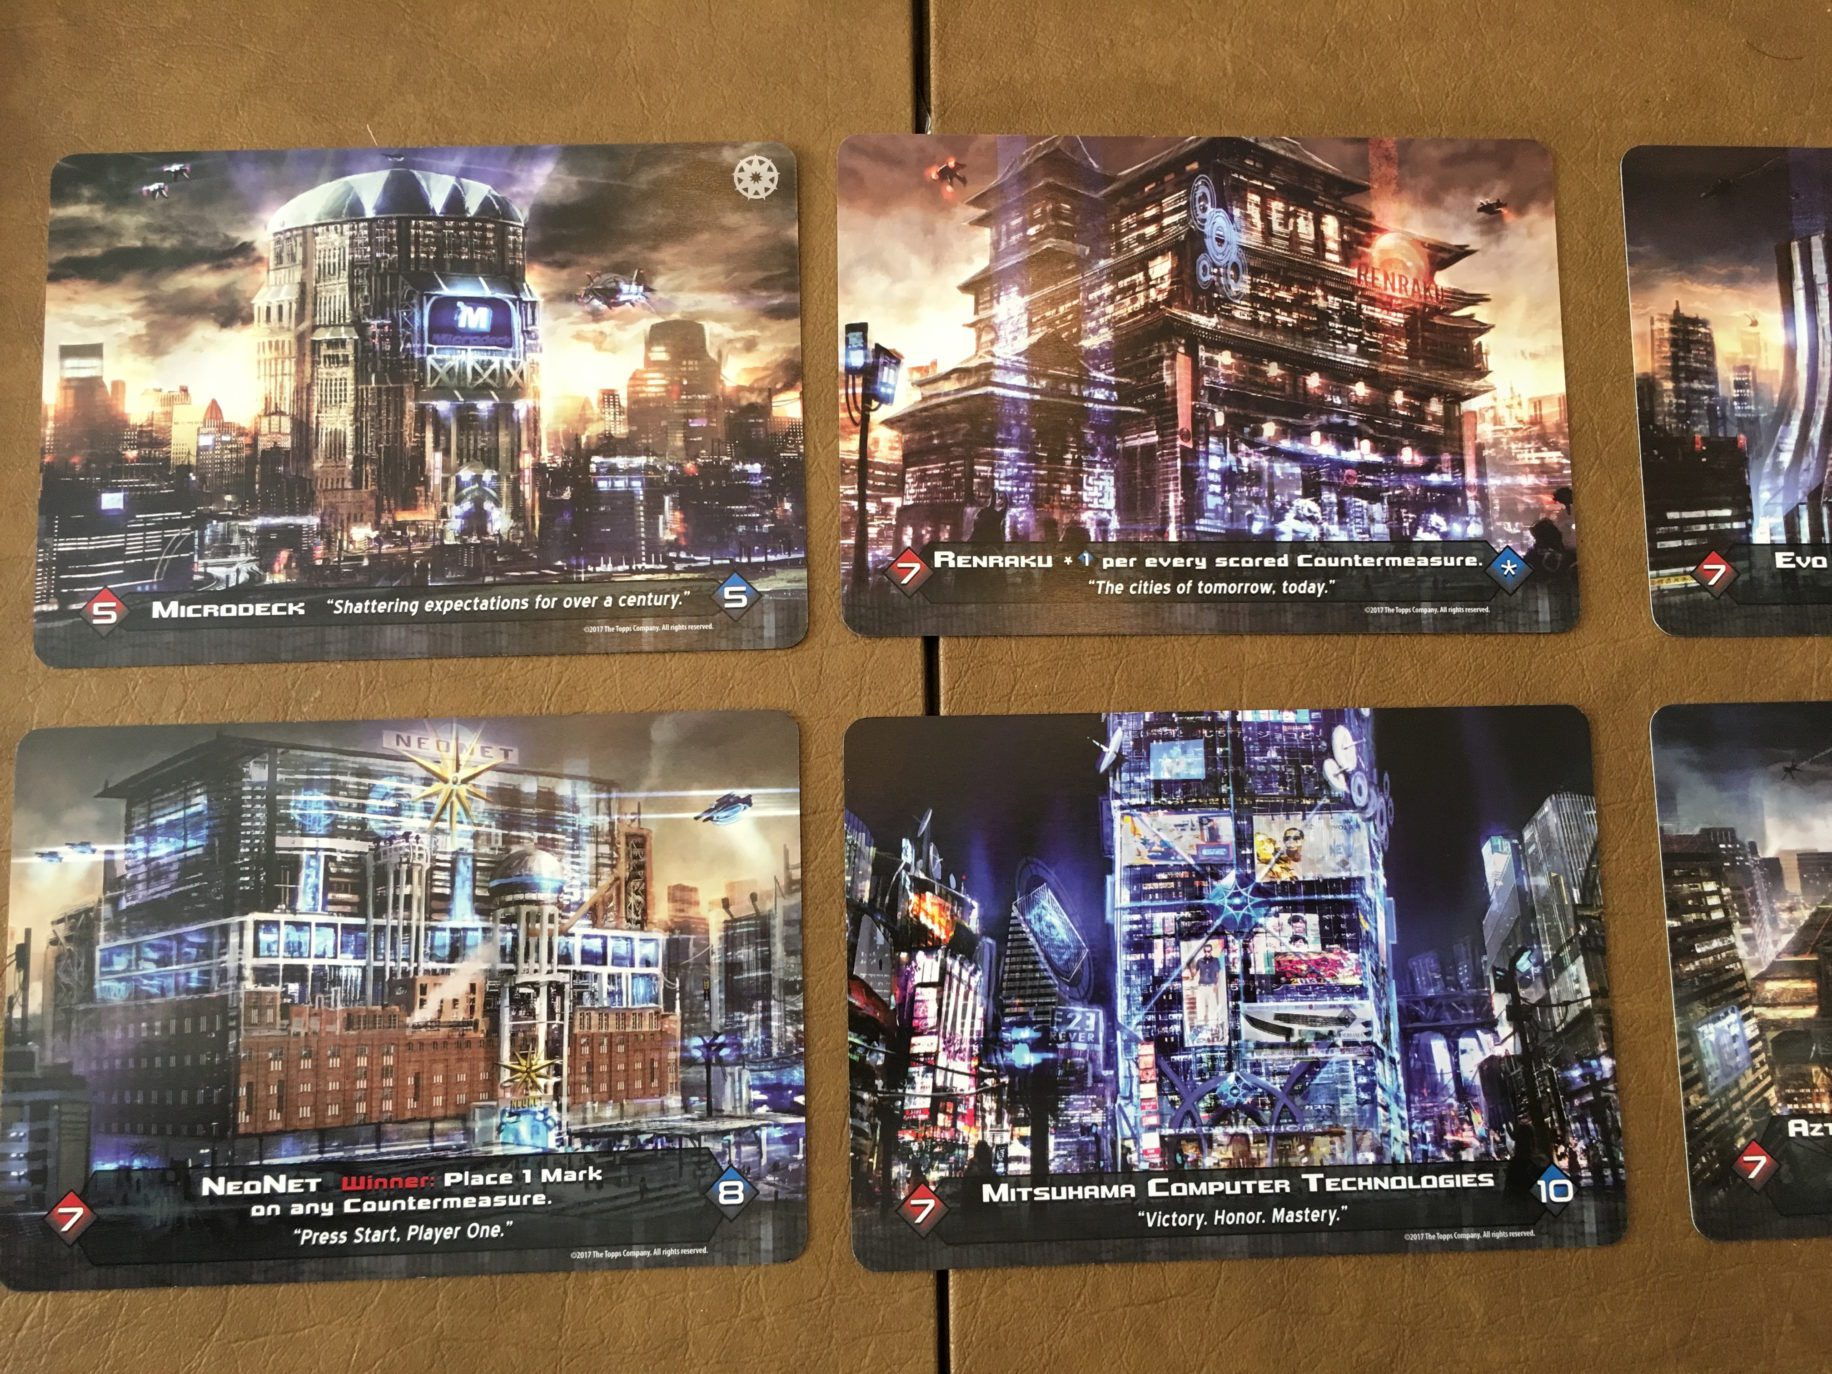 Megacorp cards